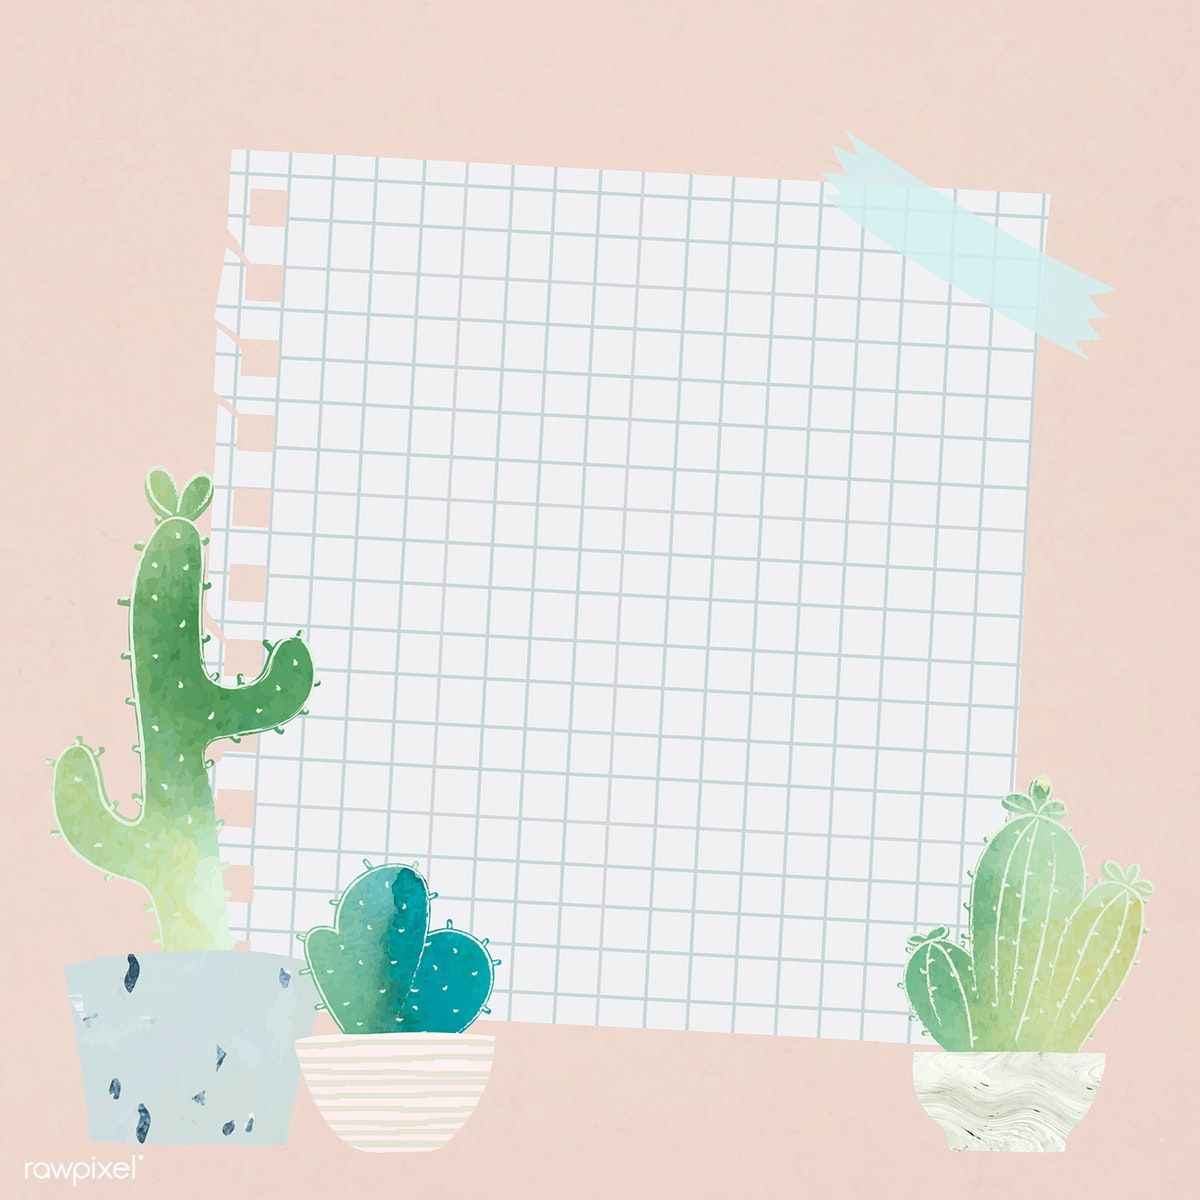 Download premium vector of Blank paper with cactus